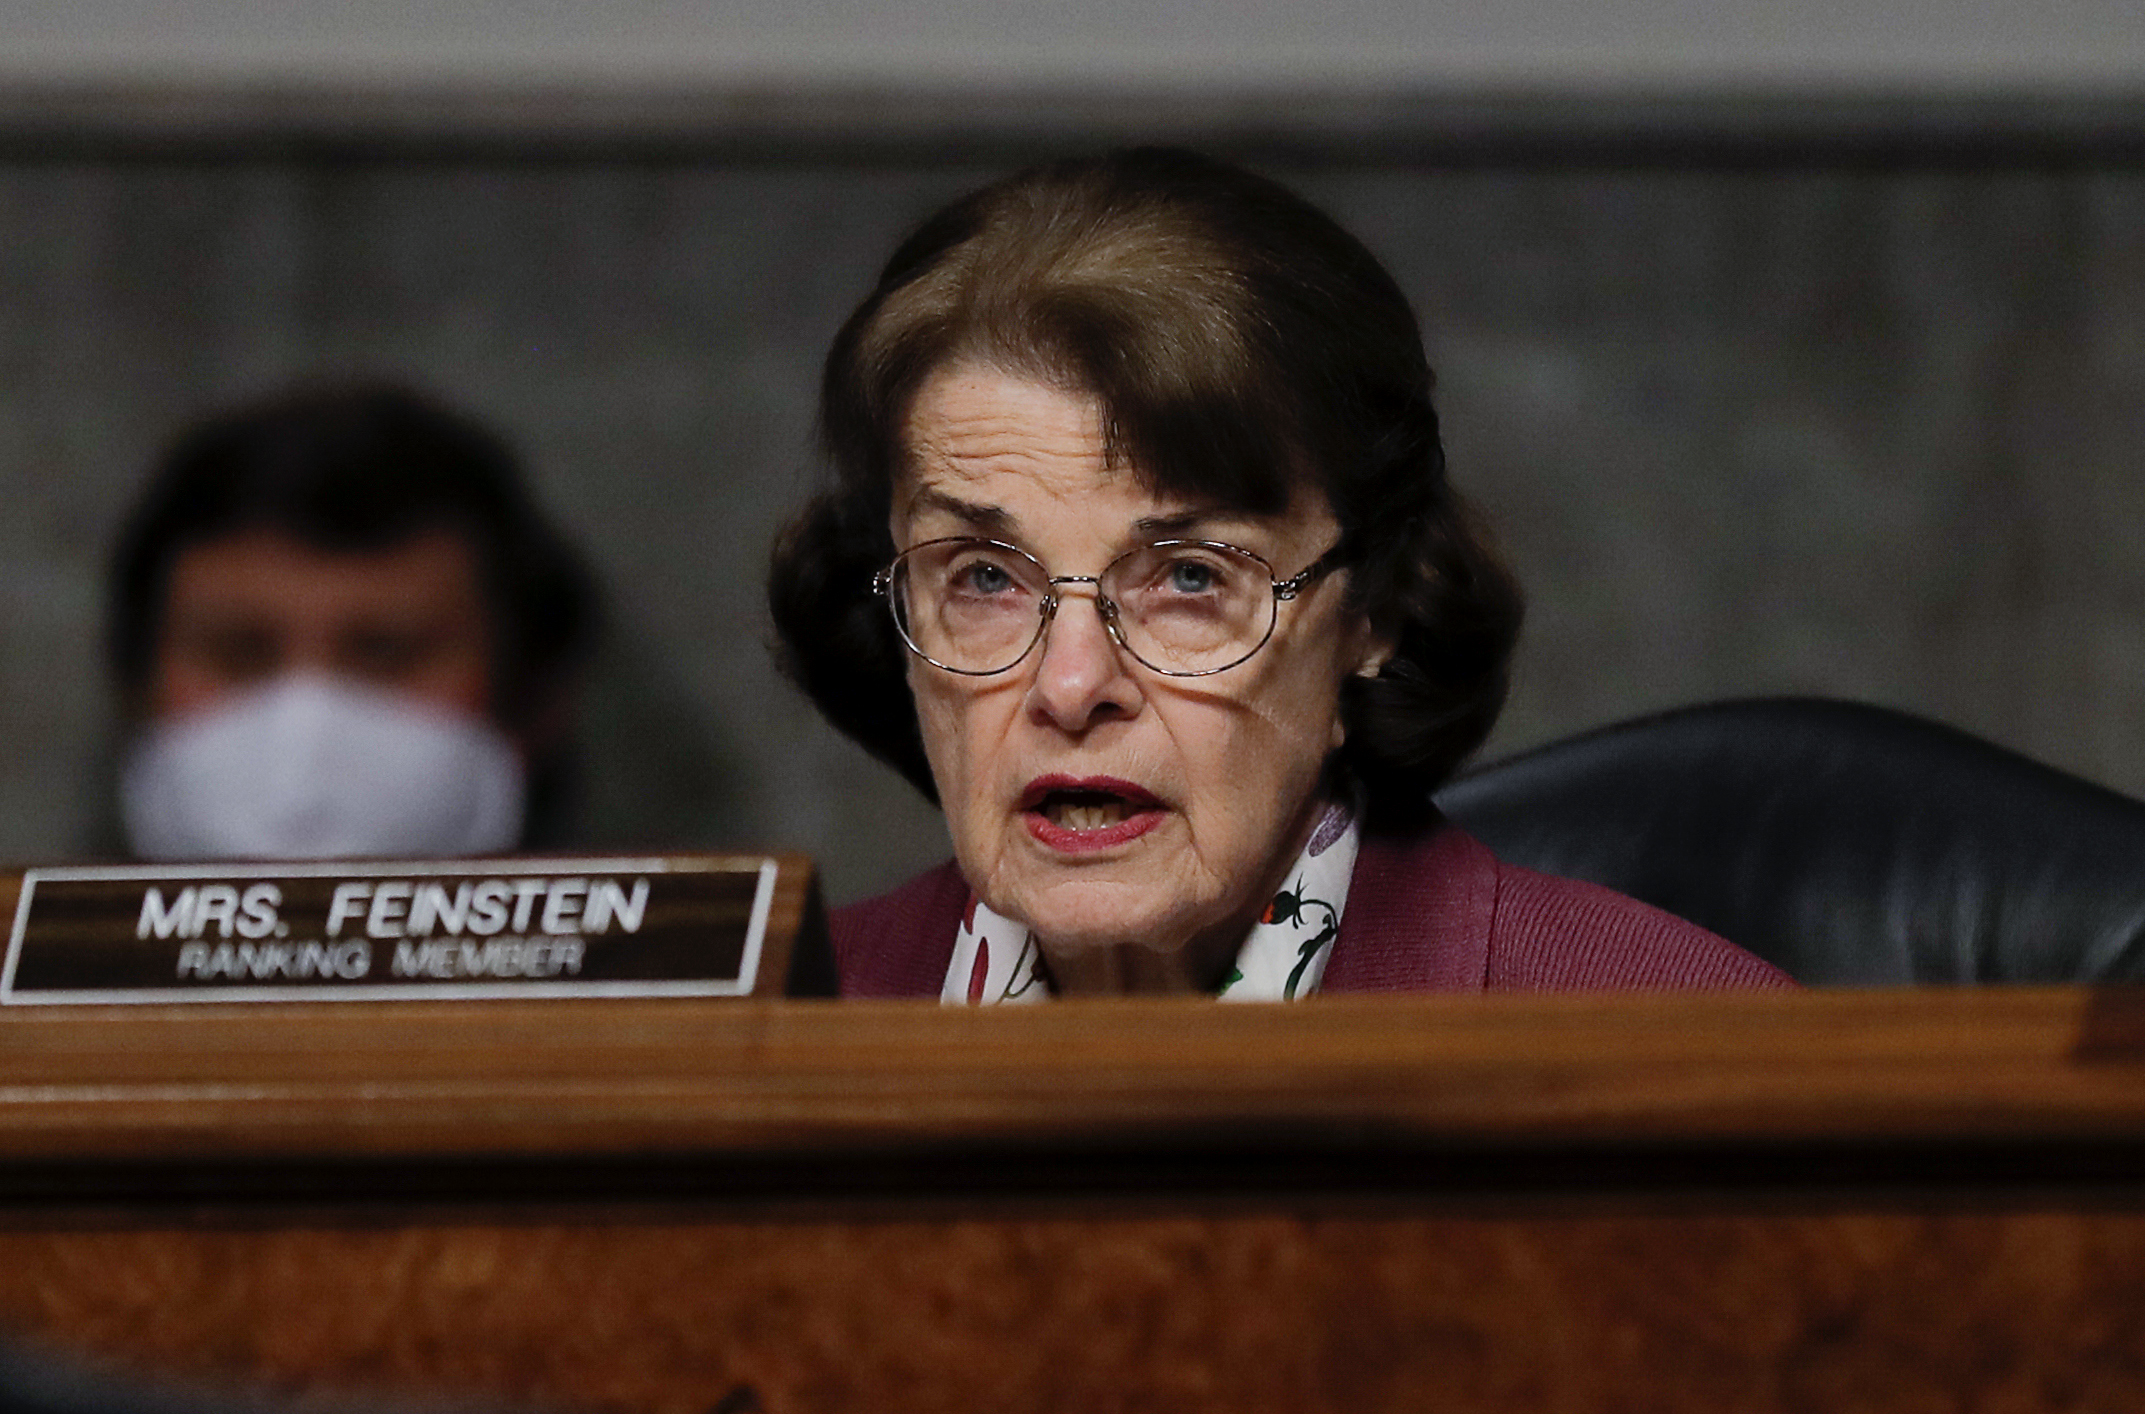 Sen. Dianne Feinstein participates in a Senate Judiciary Committee hearing examining liability during the coronavirus on May 12, 2020. (Carlos Barria / AFP / Getty Images)